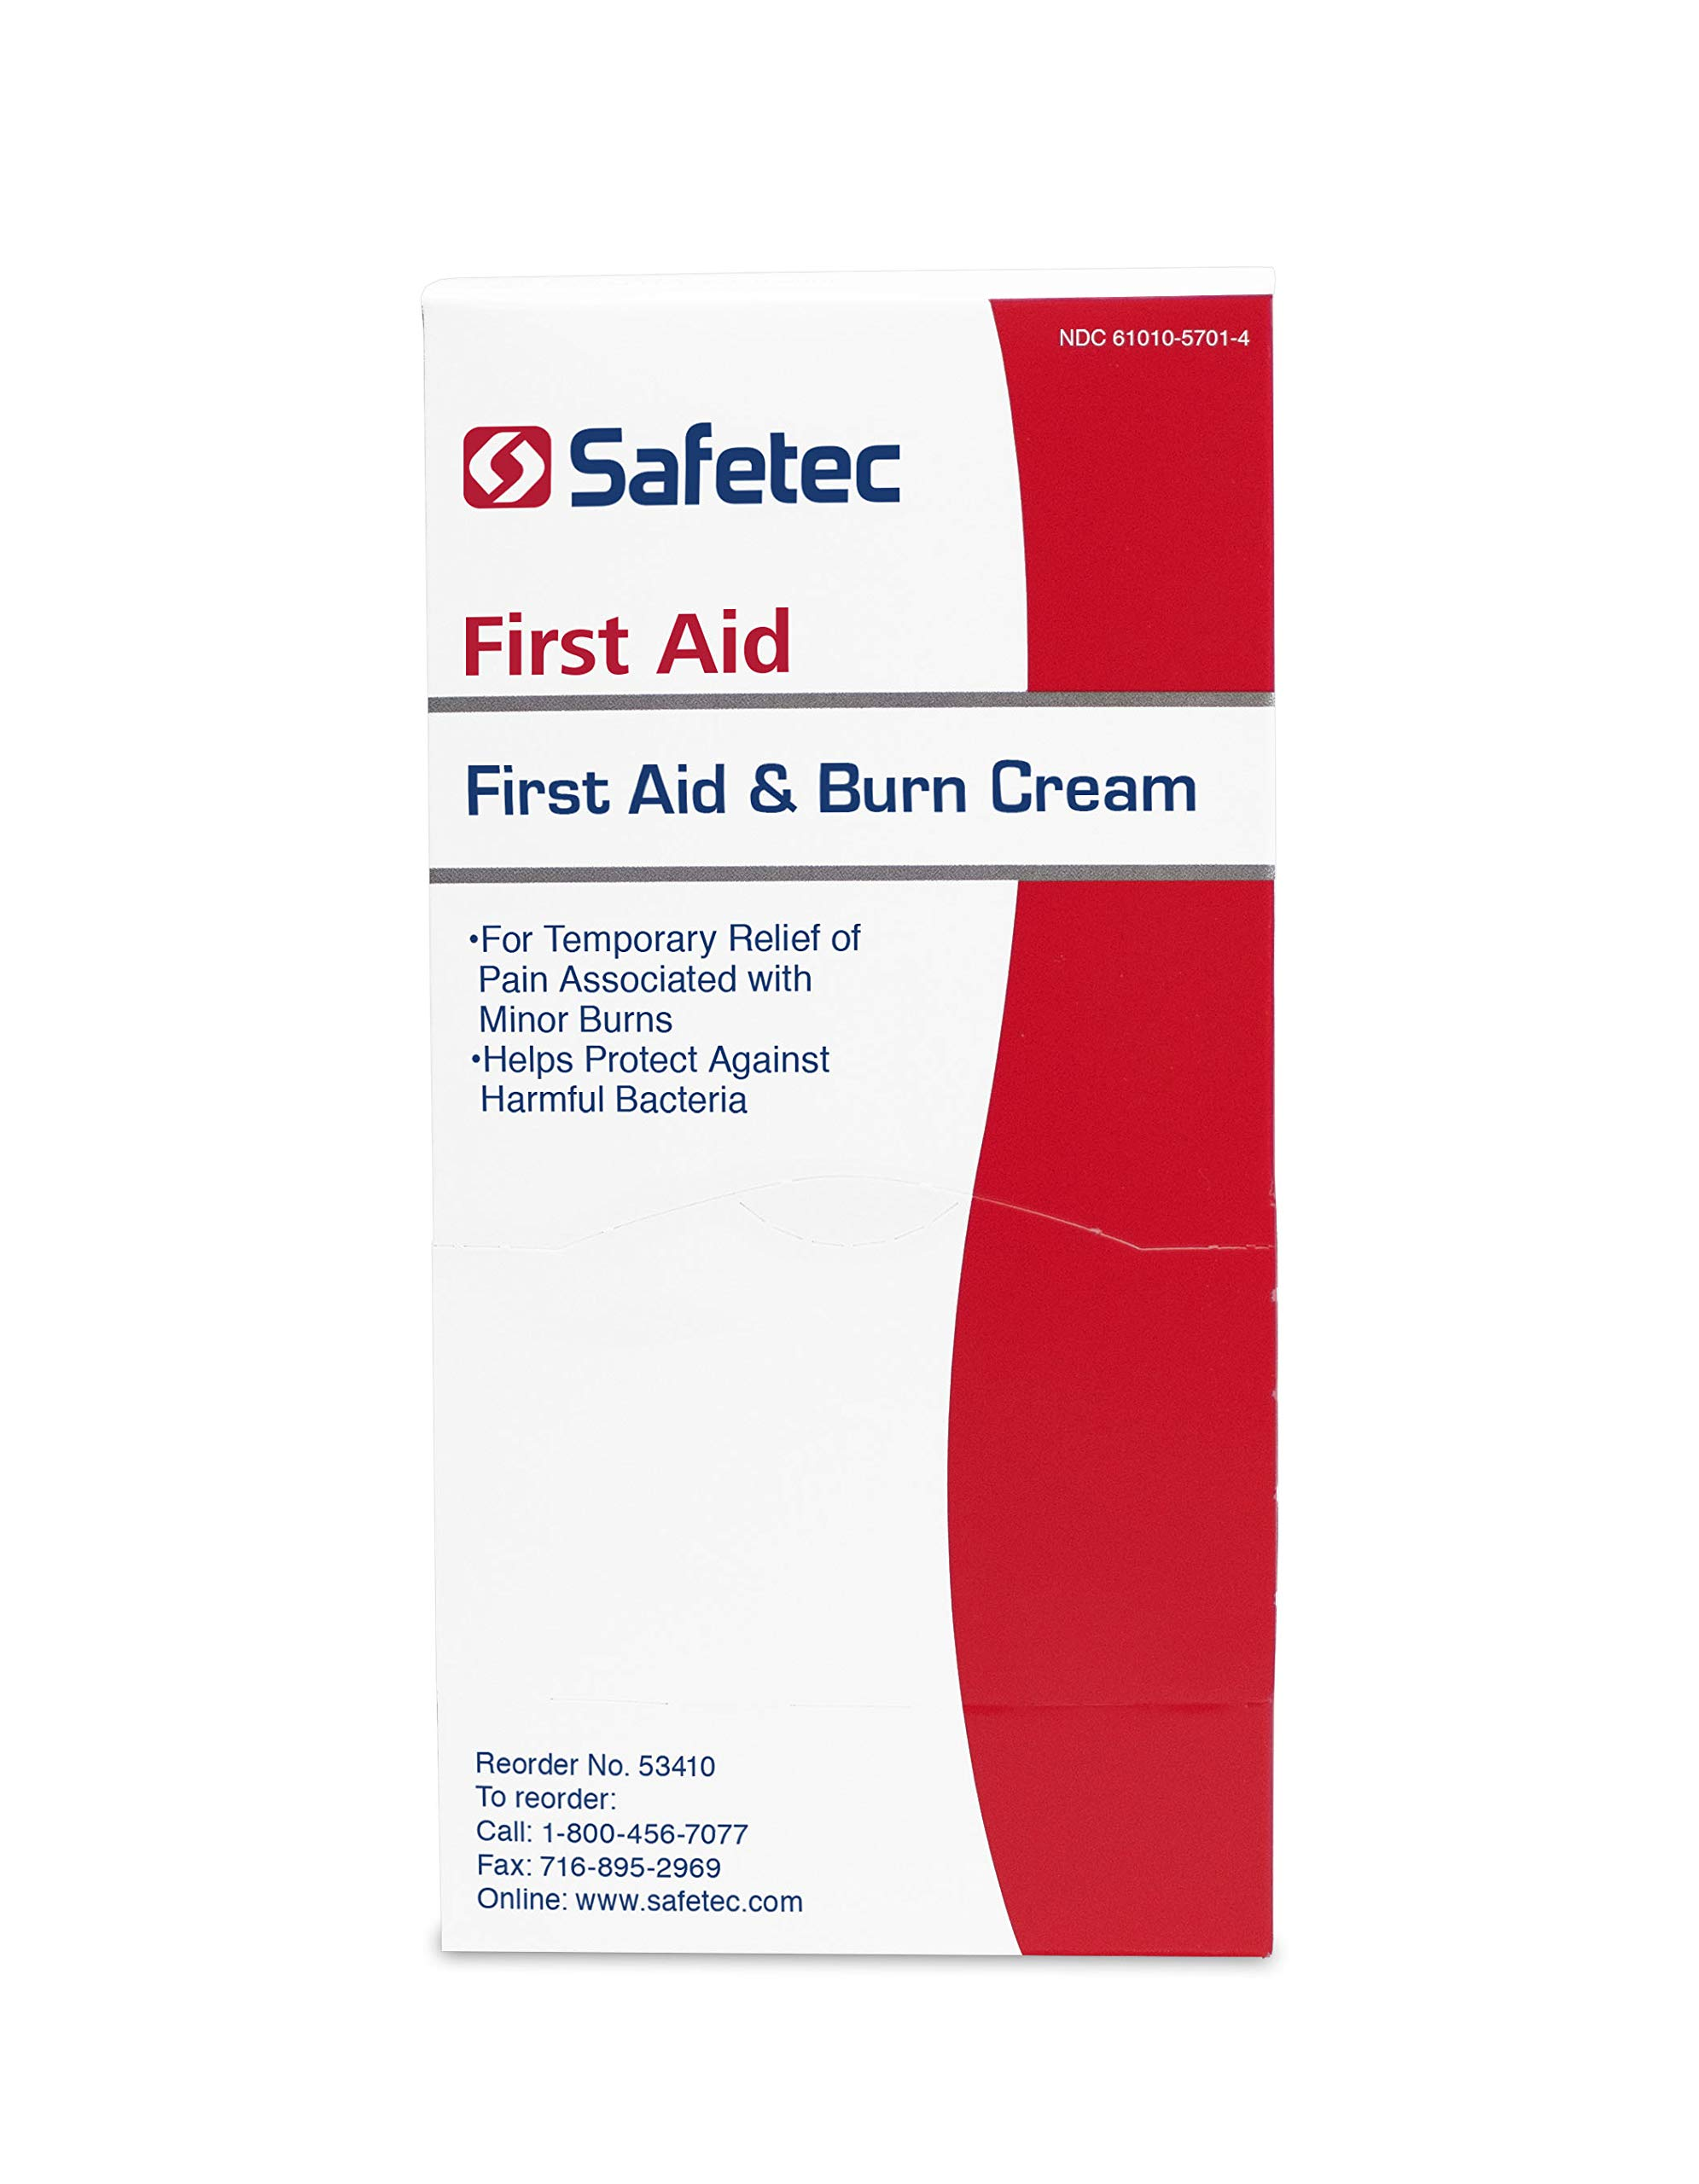 Safetec First Aid Burn Cream .9 g. Pouch 144 ct. Box (4 Pack) by Safetec